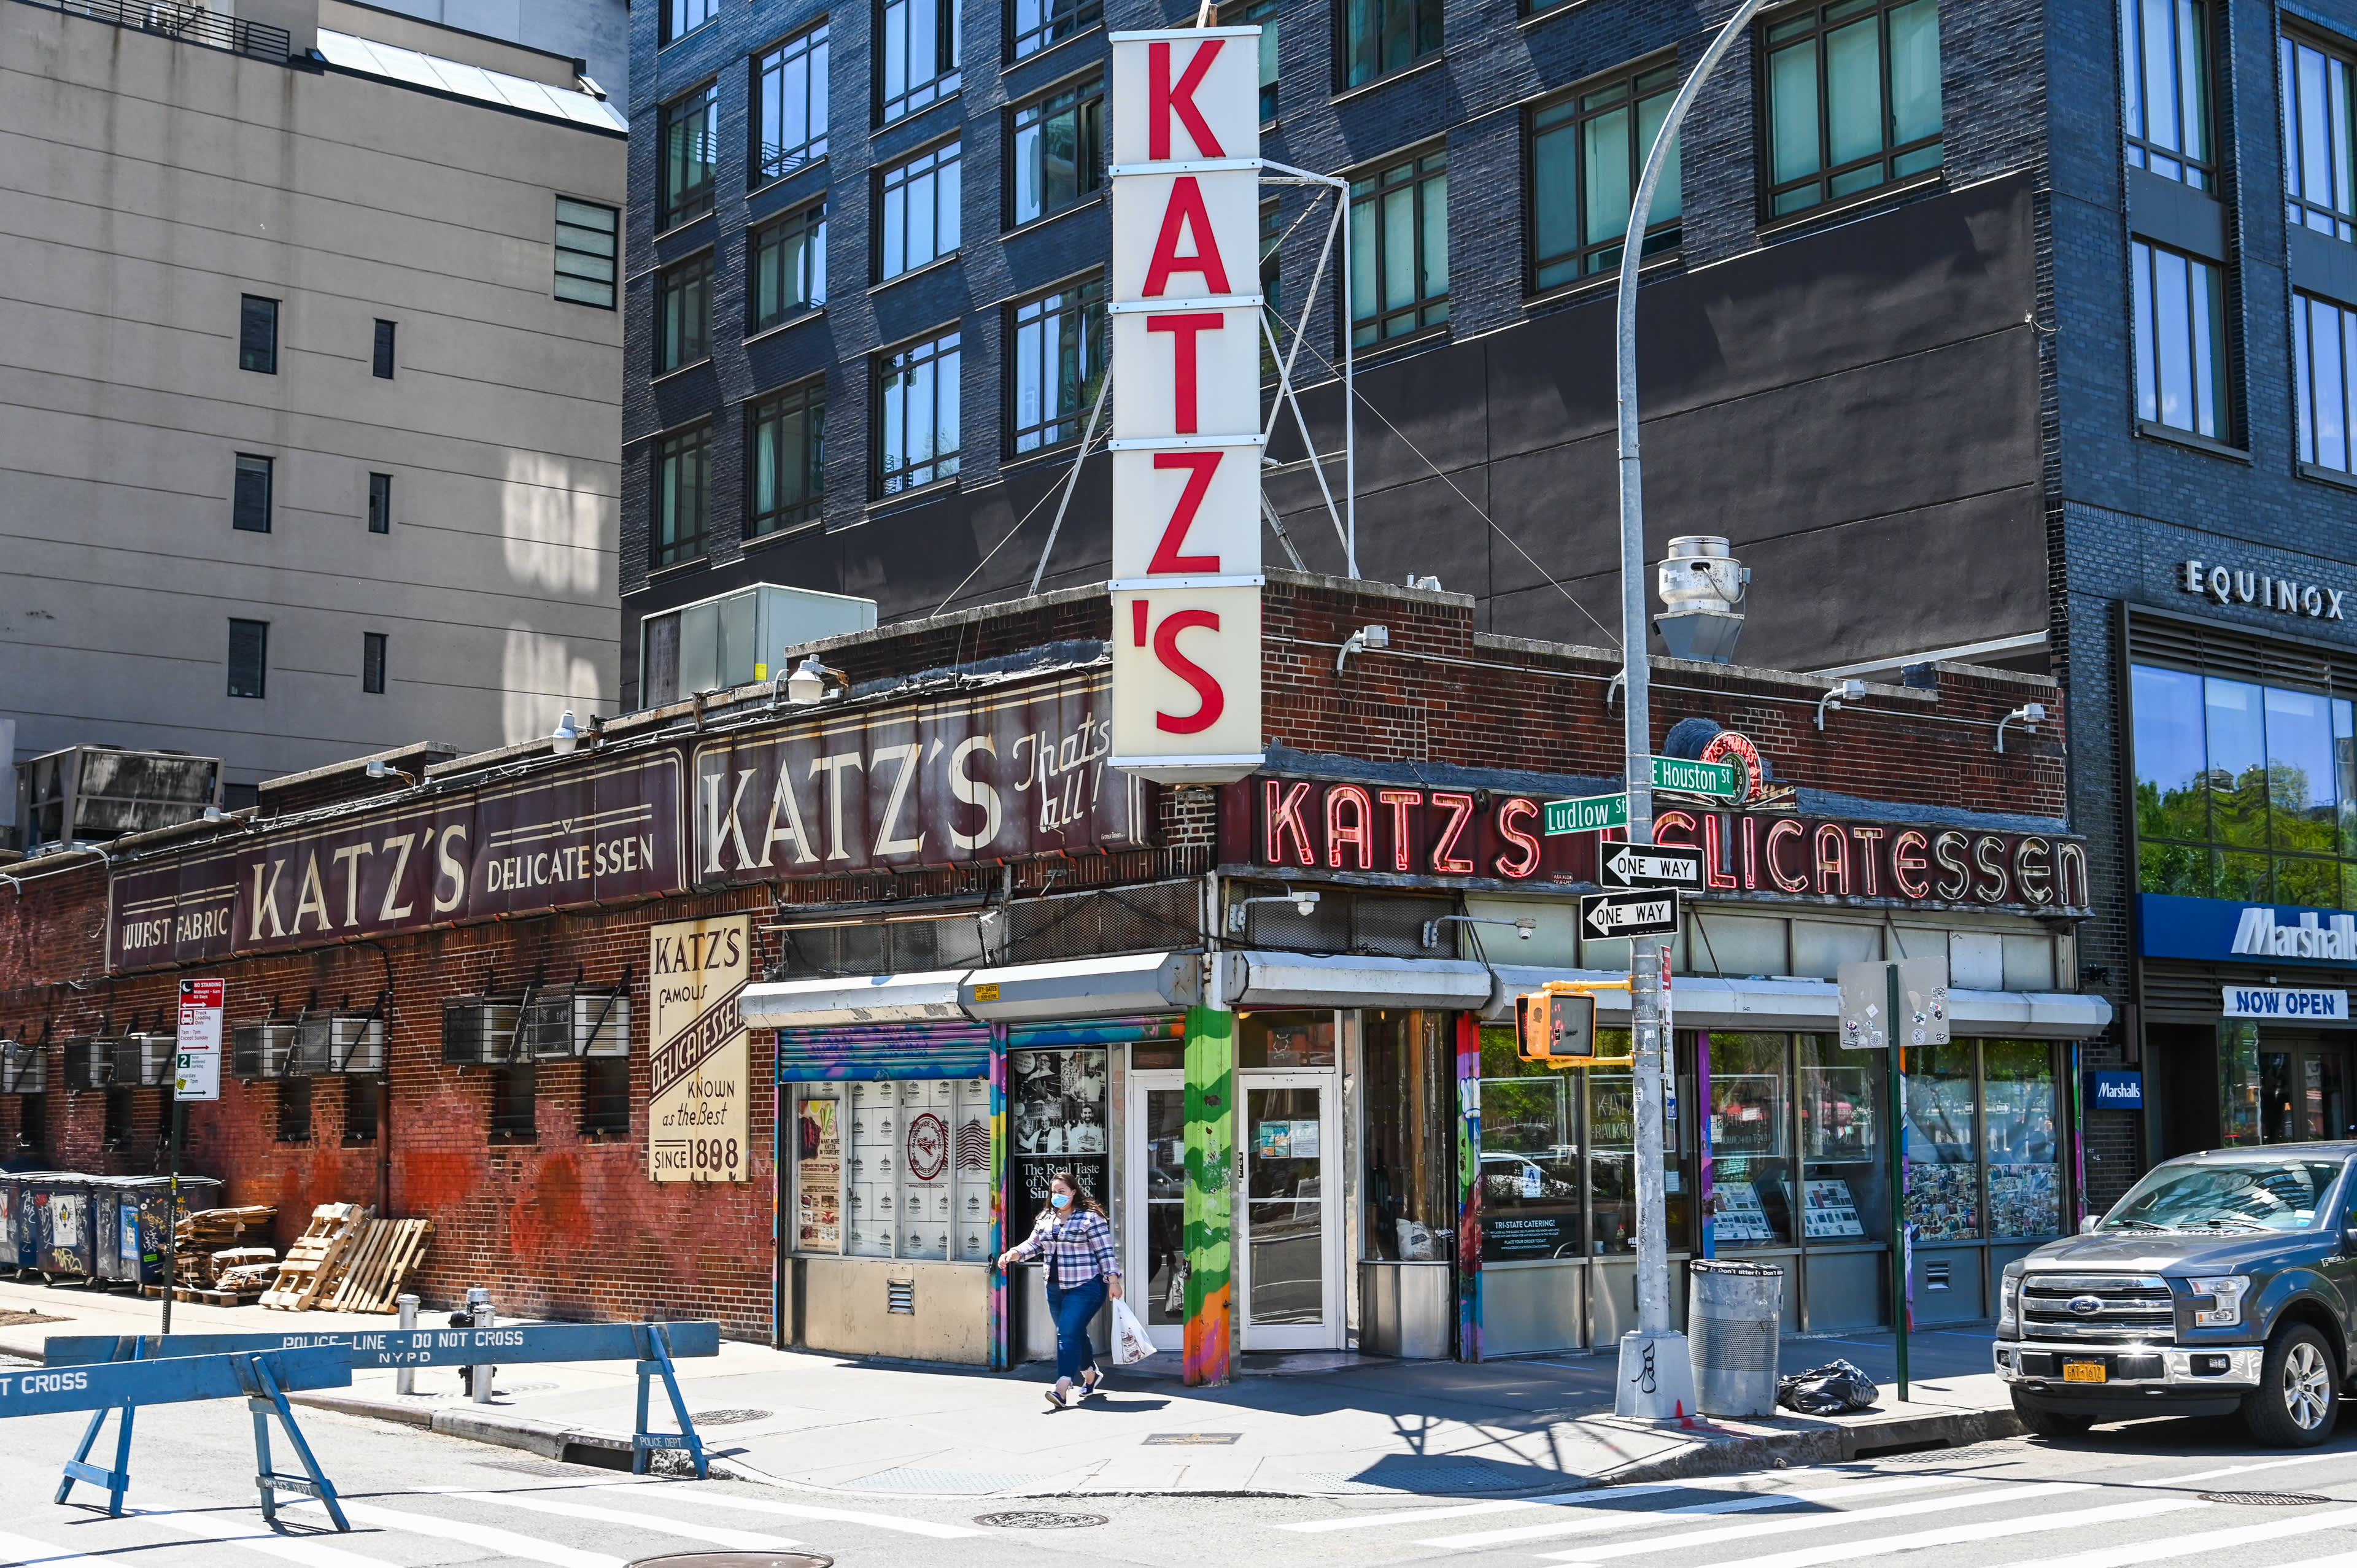 Katz's deli survived the 1918 pandemic. Now, it's navigating Covid